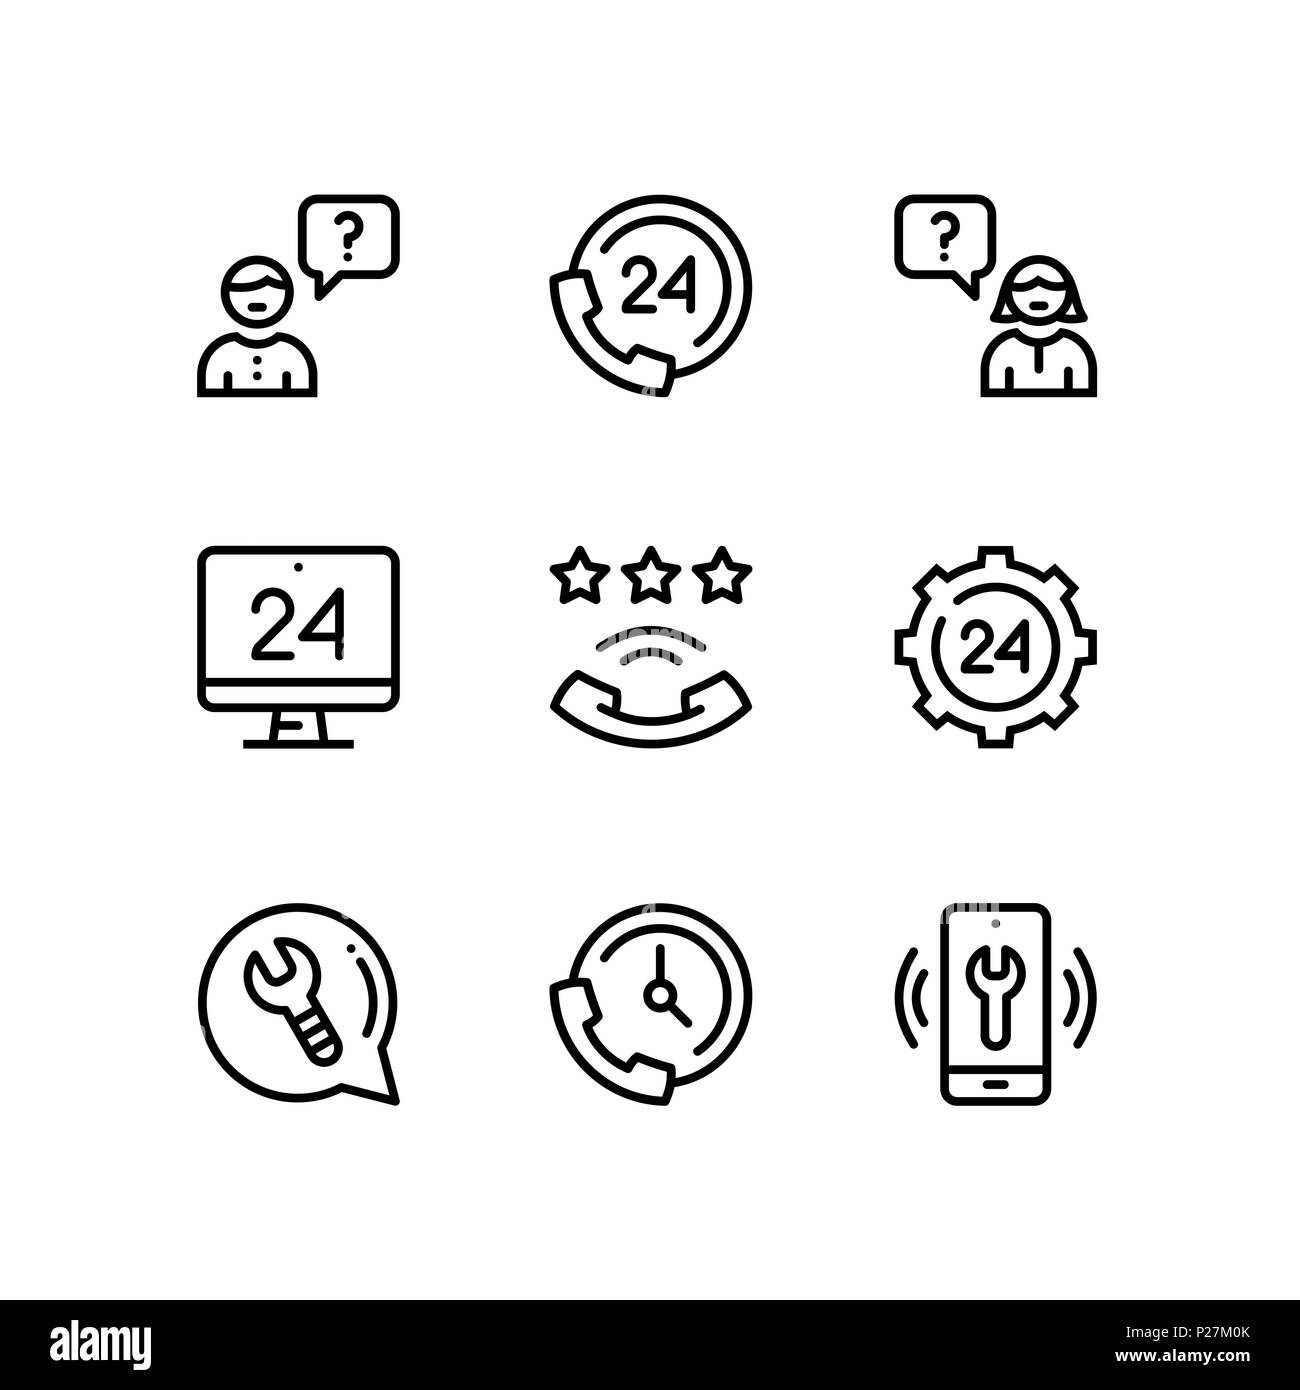 Support, service, help simple line icons for web and mobile design pack 3 - Stock Image